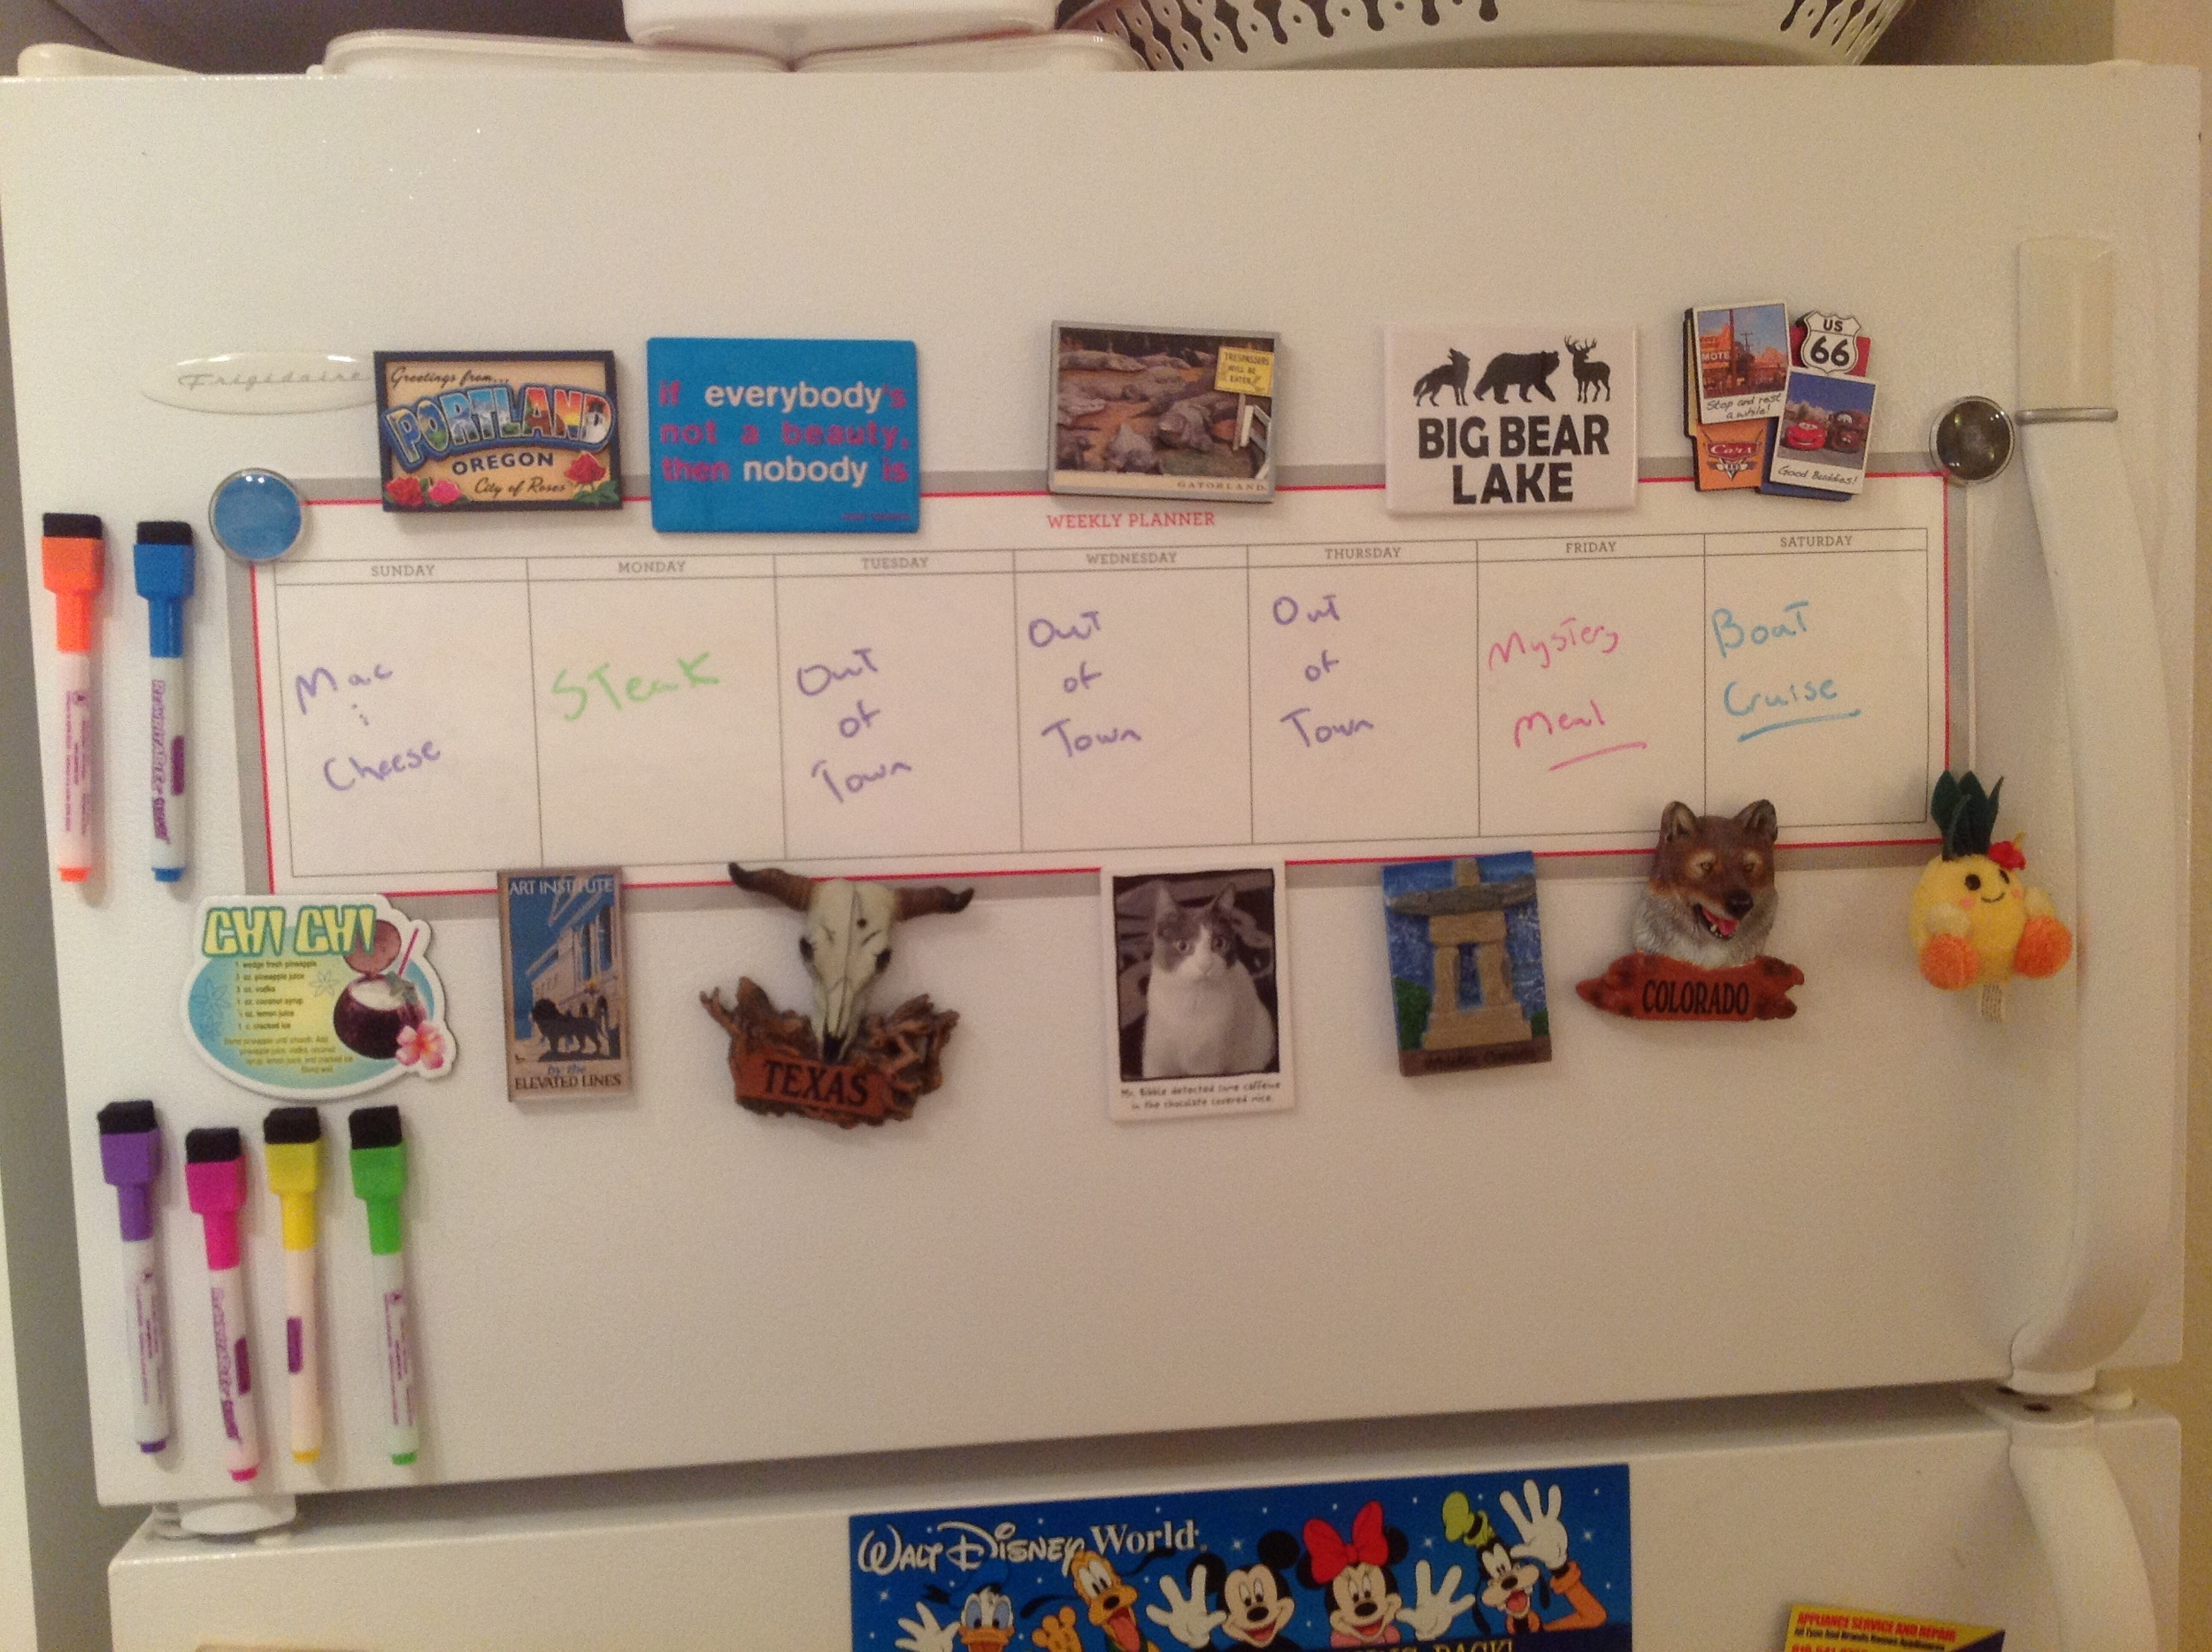 Our Martha Stewart week board. Unfortunately, it's not magnetic, so we used our magnet collection to hold it up. Please don't judge the meal choices or messy writing!